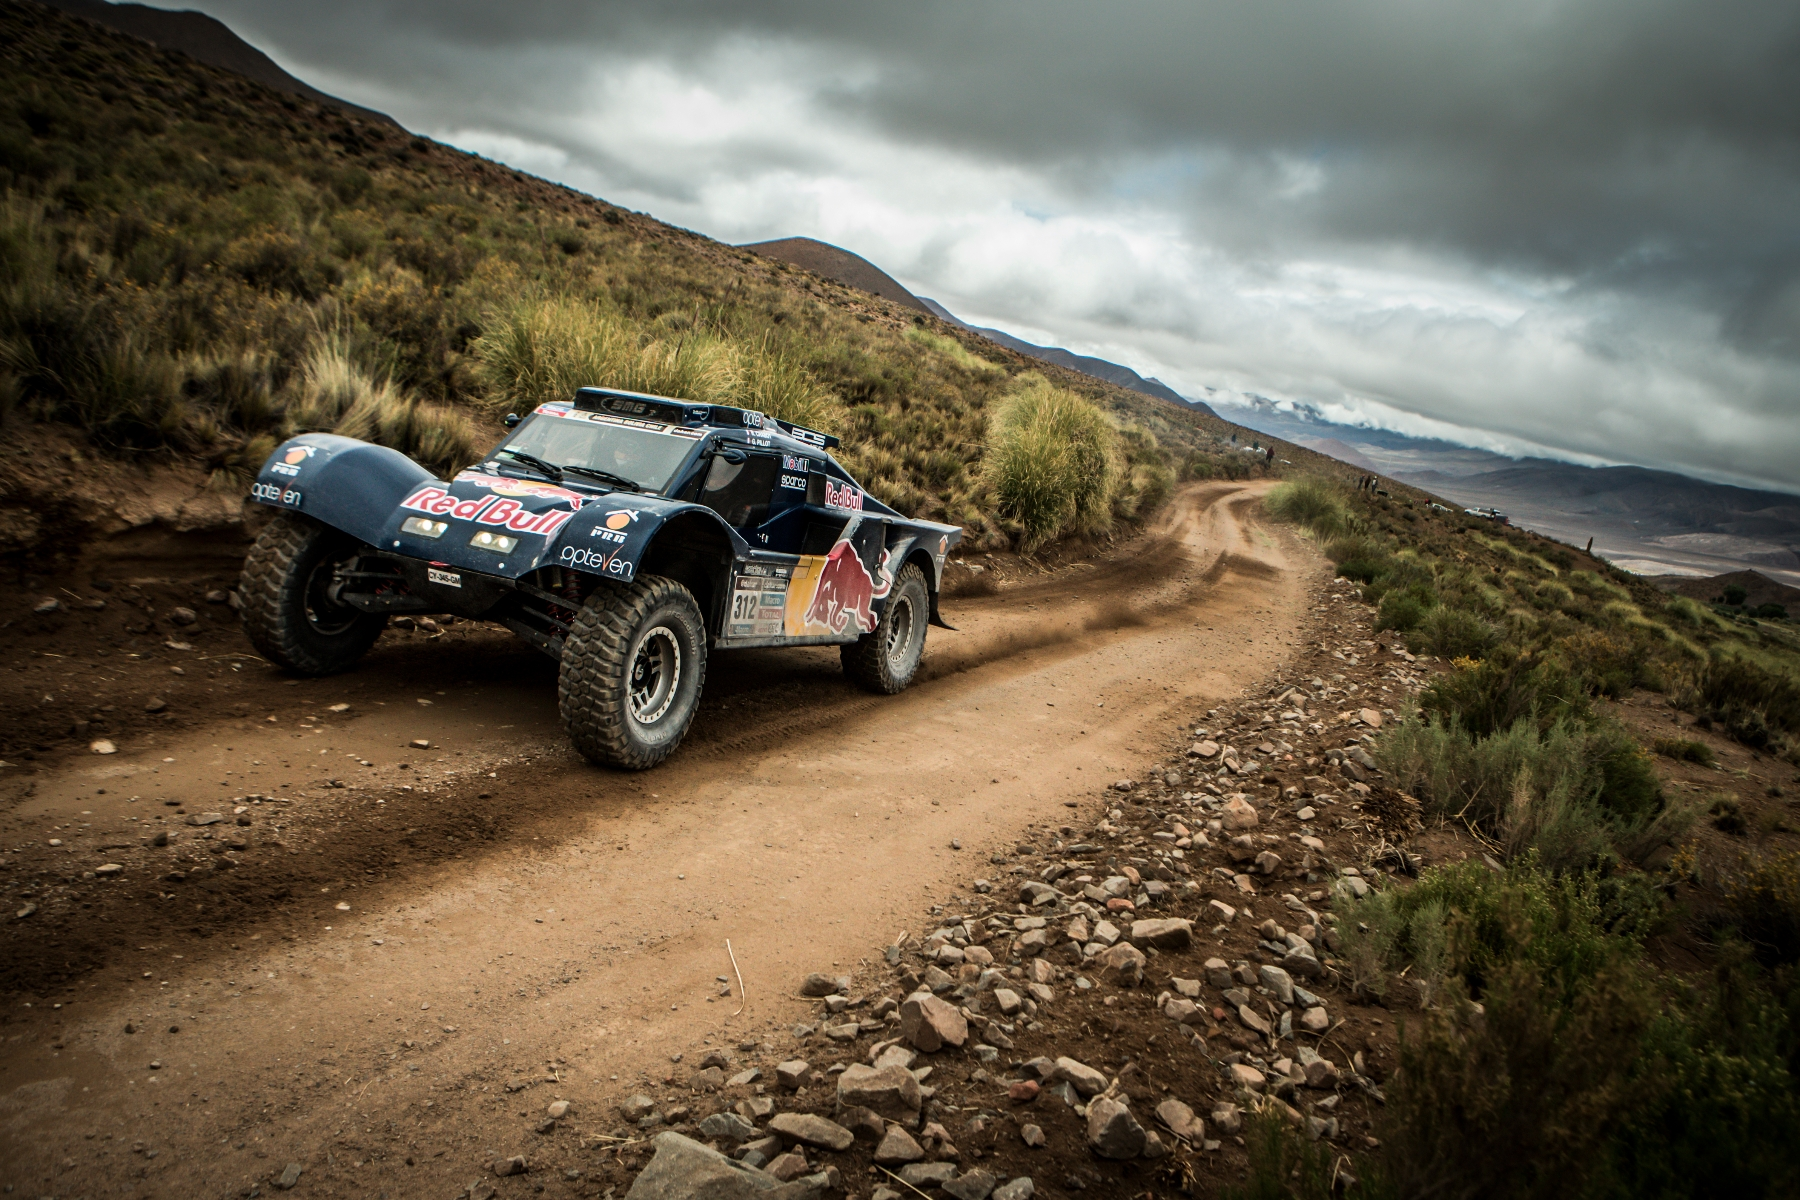 Chabot Ronan and  Pillot Gilles (co-driver) race during the 7th stage of Dakar Rally from Salta to Salta, Argentina on January 12th, 2014